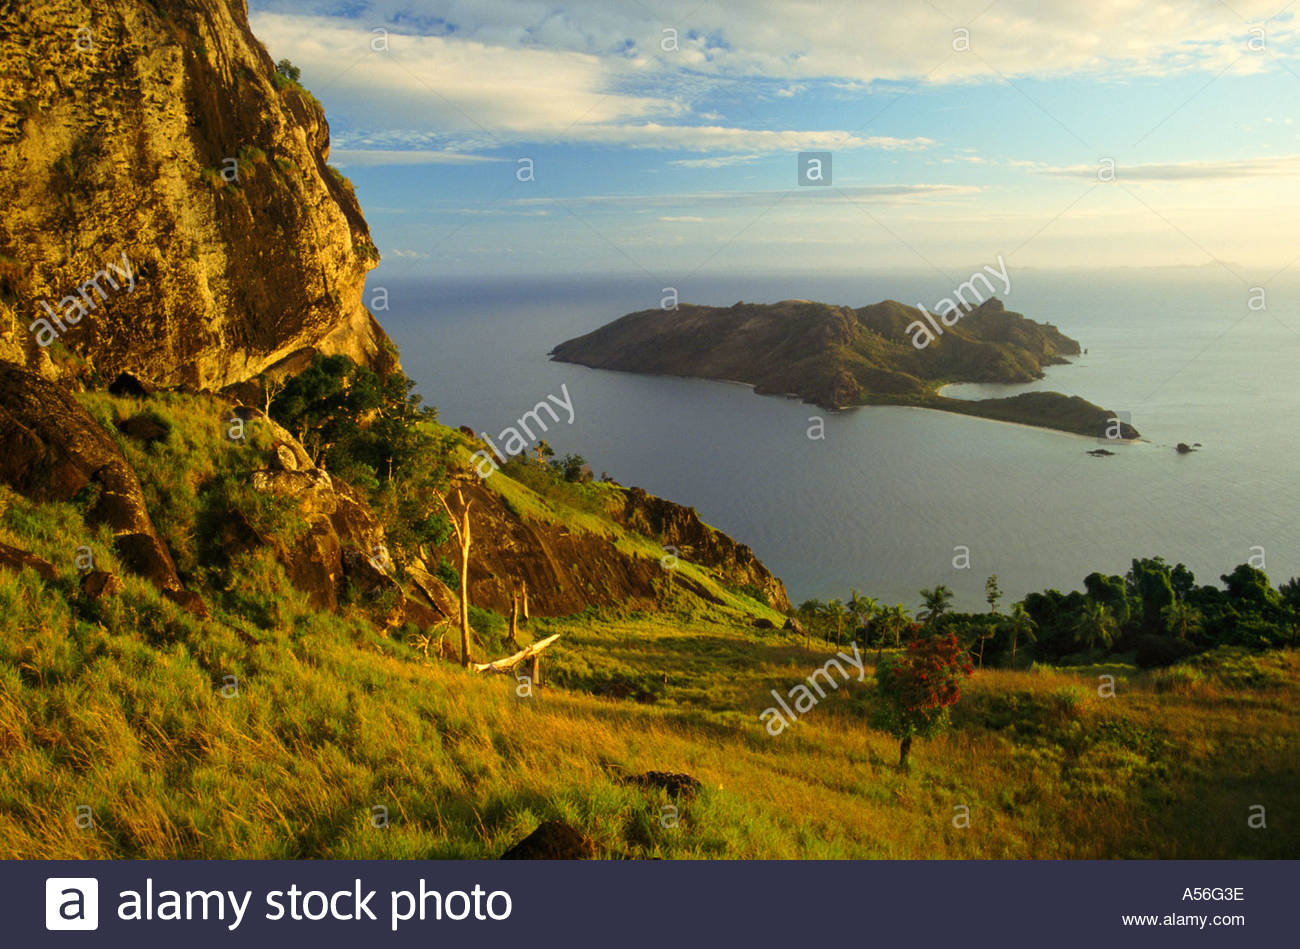 Elevated view to Kuata island from Waya island, Fiji, South Pacific - Stock Image